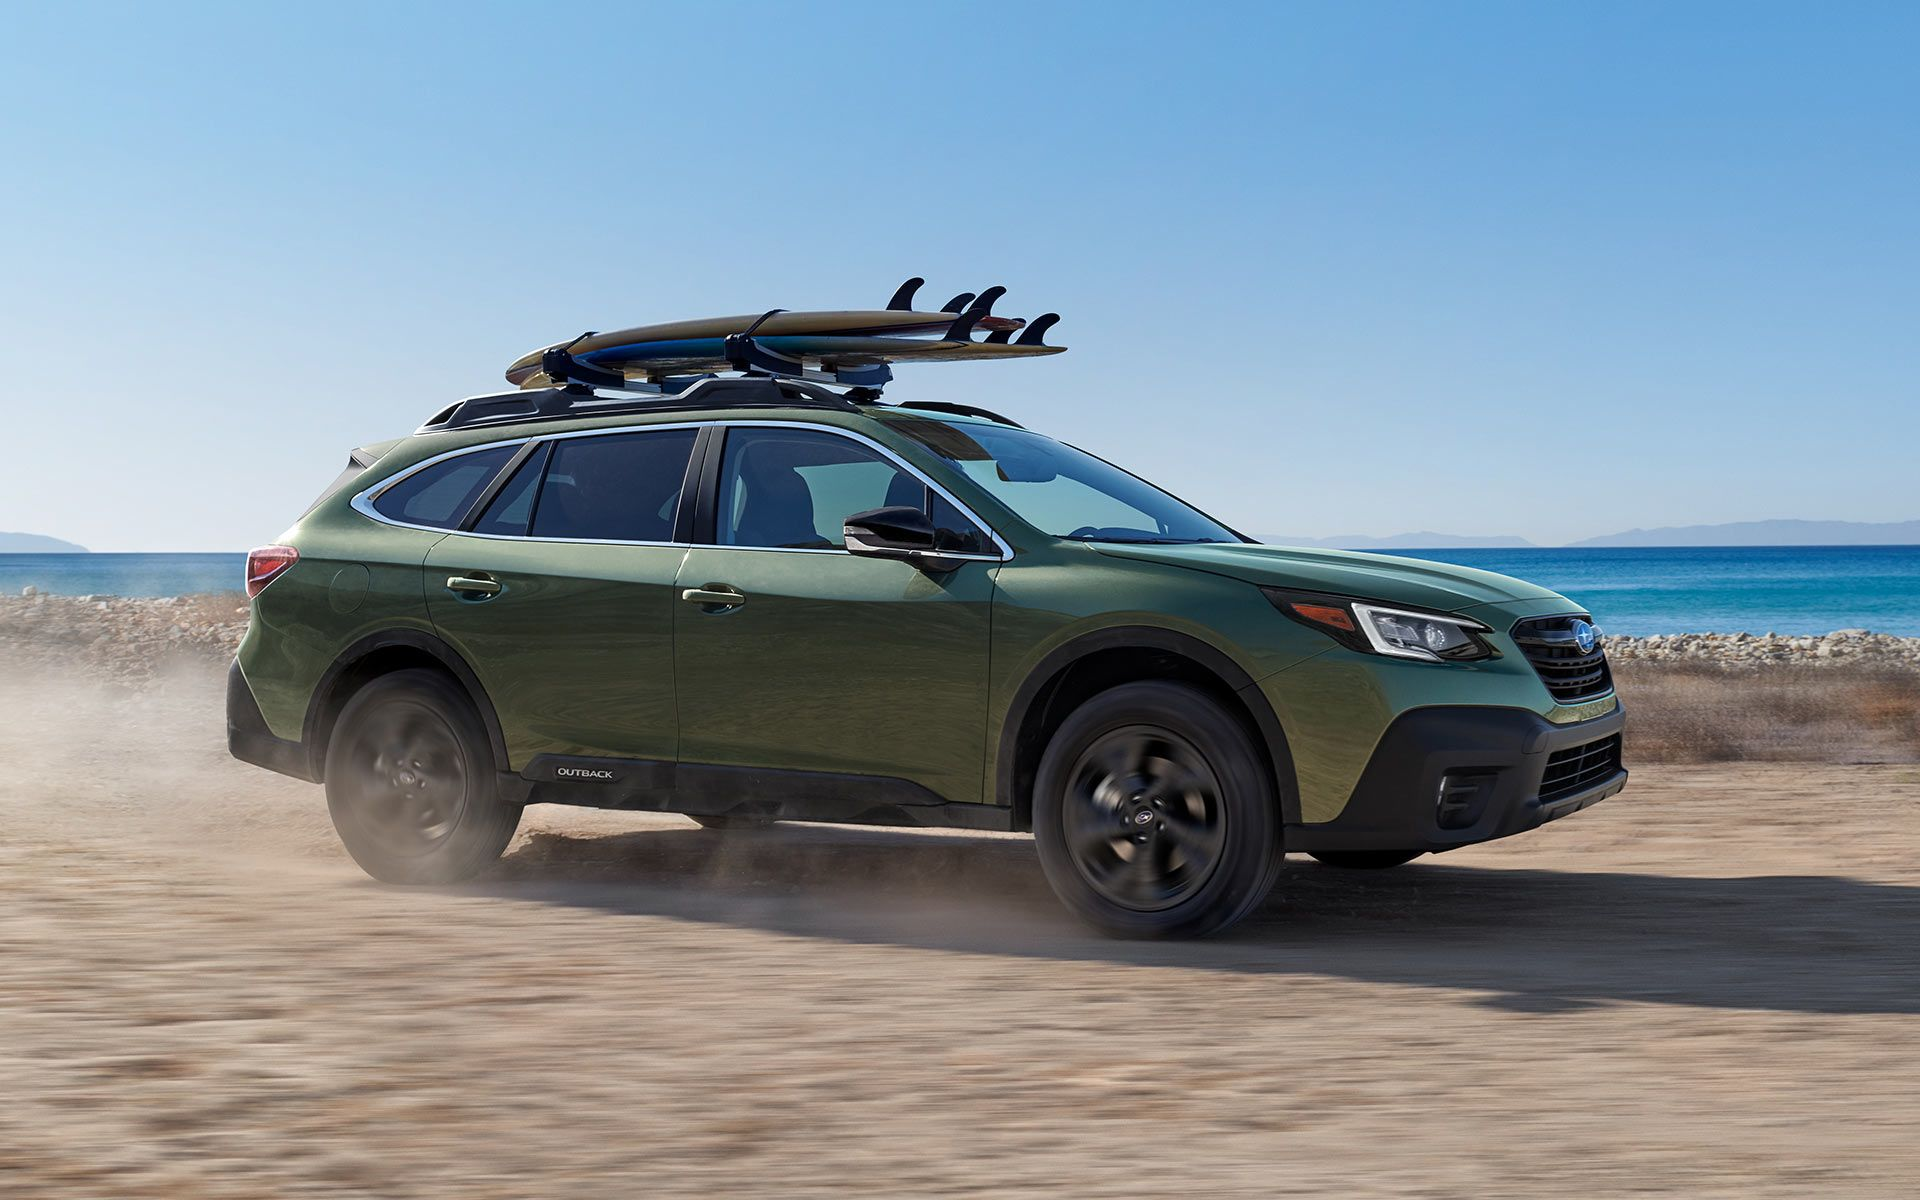 Introducing The All New 2020 Subaru Outback Go Where Love Takes You Subaru Outback Subaru Subaru Wagon